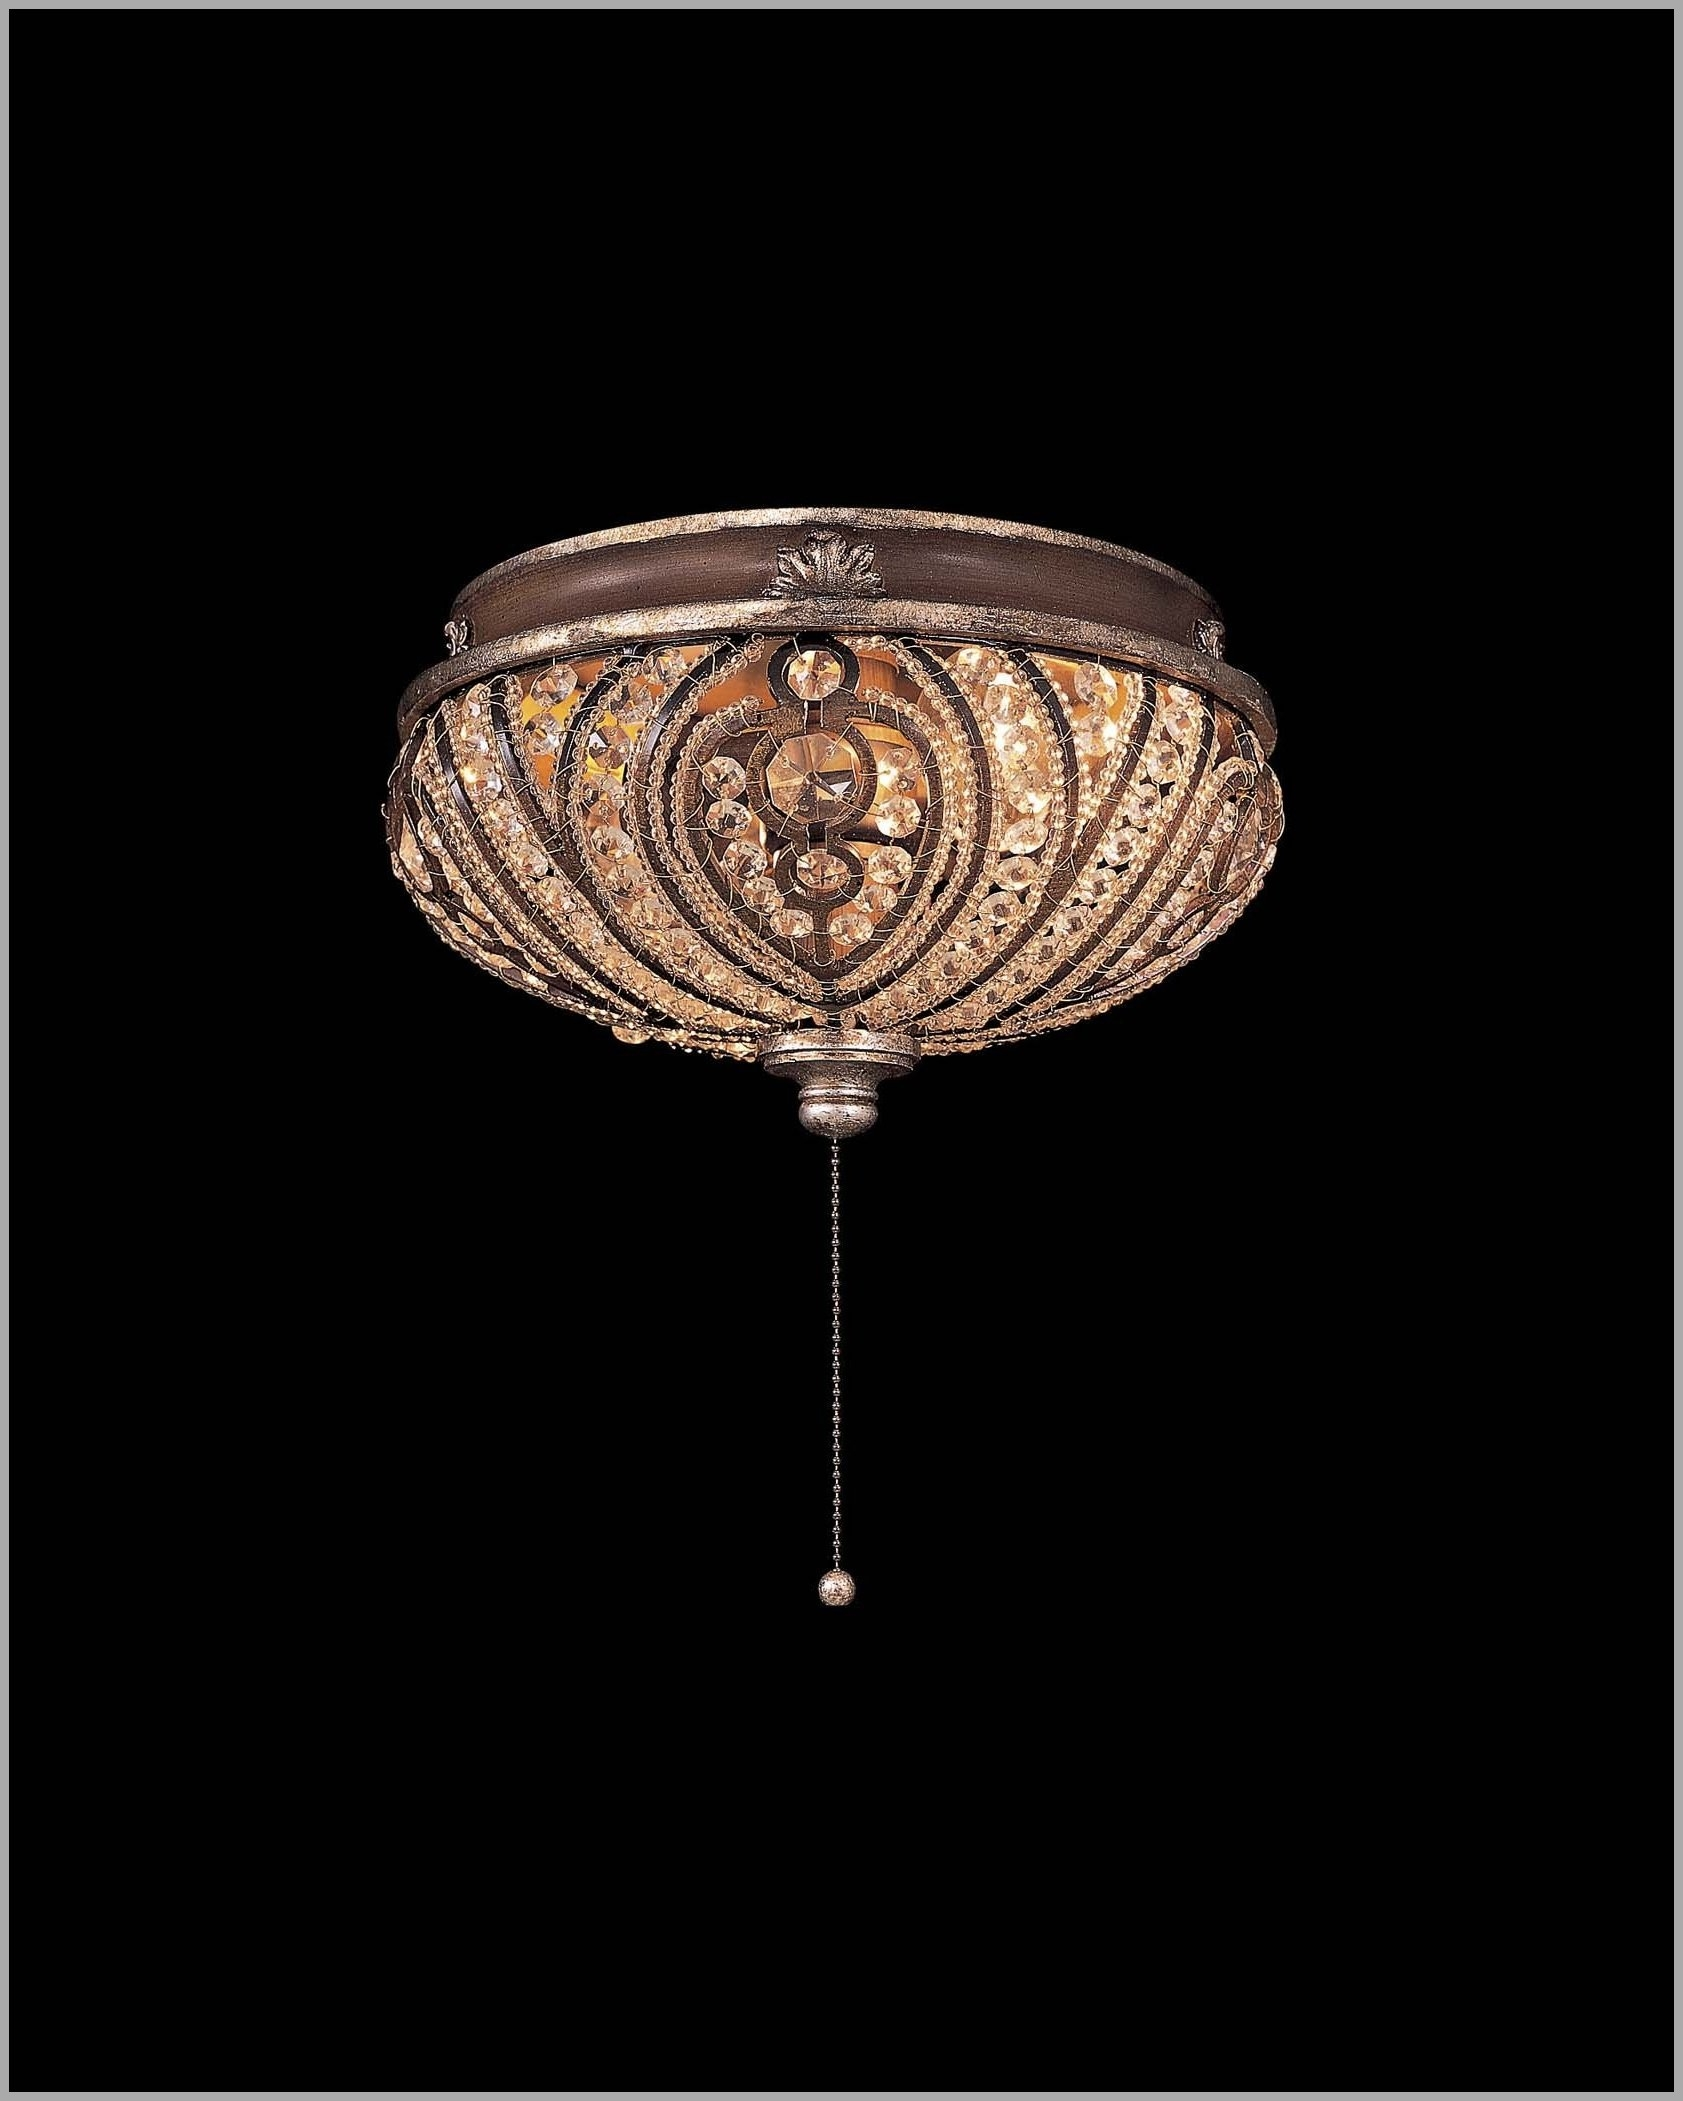 Permalink to Antique Pull Chain Ceiling Light Fixture